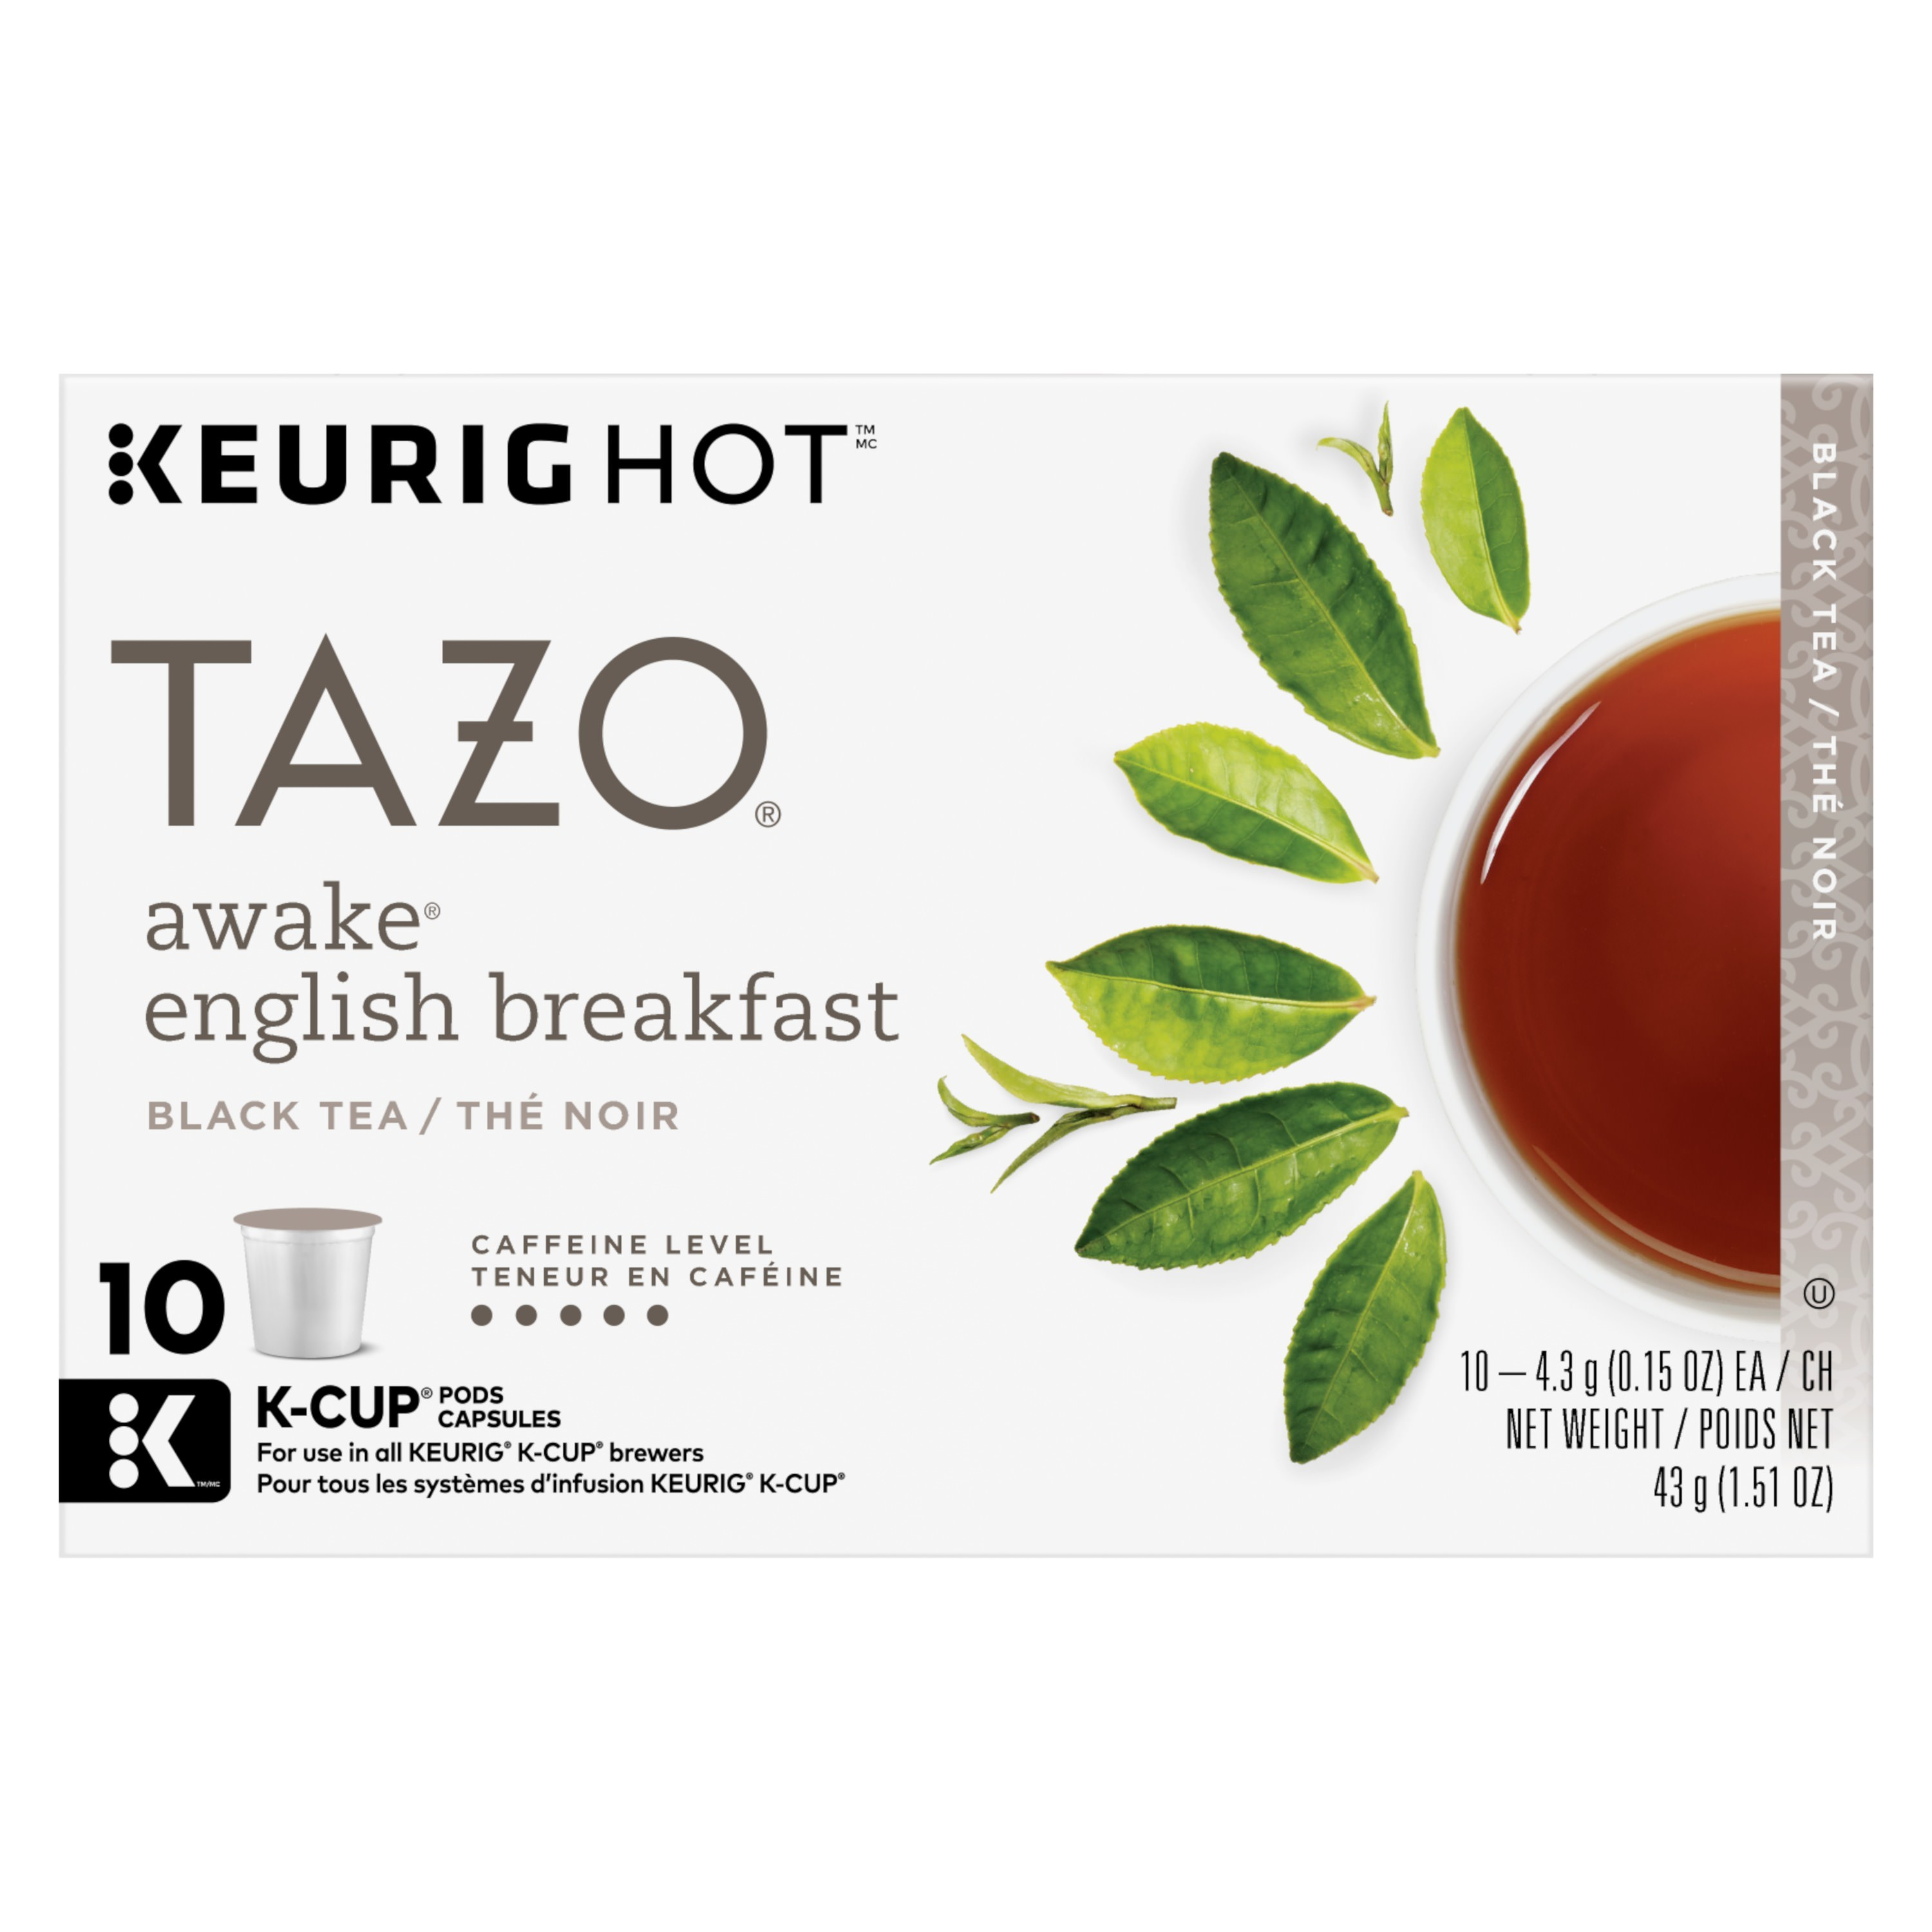 Assorted Teas & More by Tazo, Lipton & More, 16,/2,252 Cases, Ext. Retail $95,440, Rialto, CA